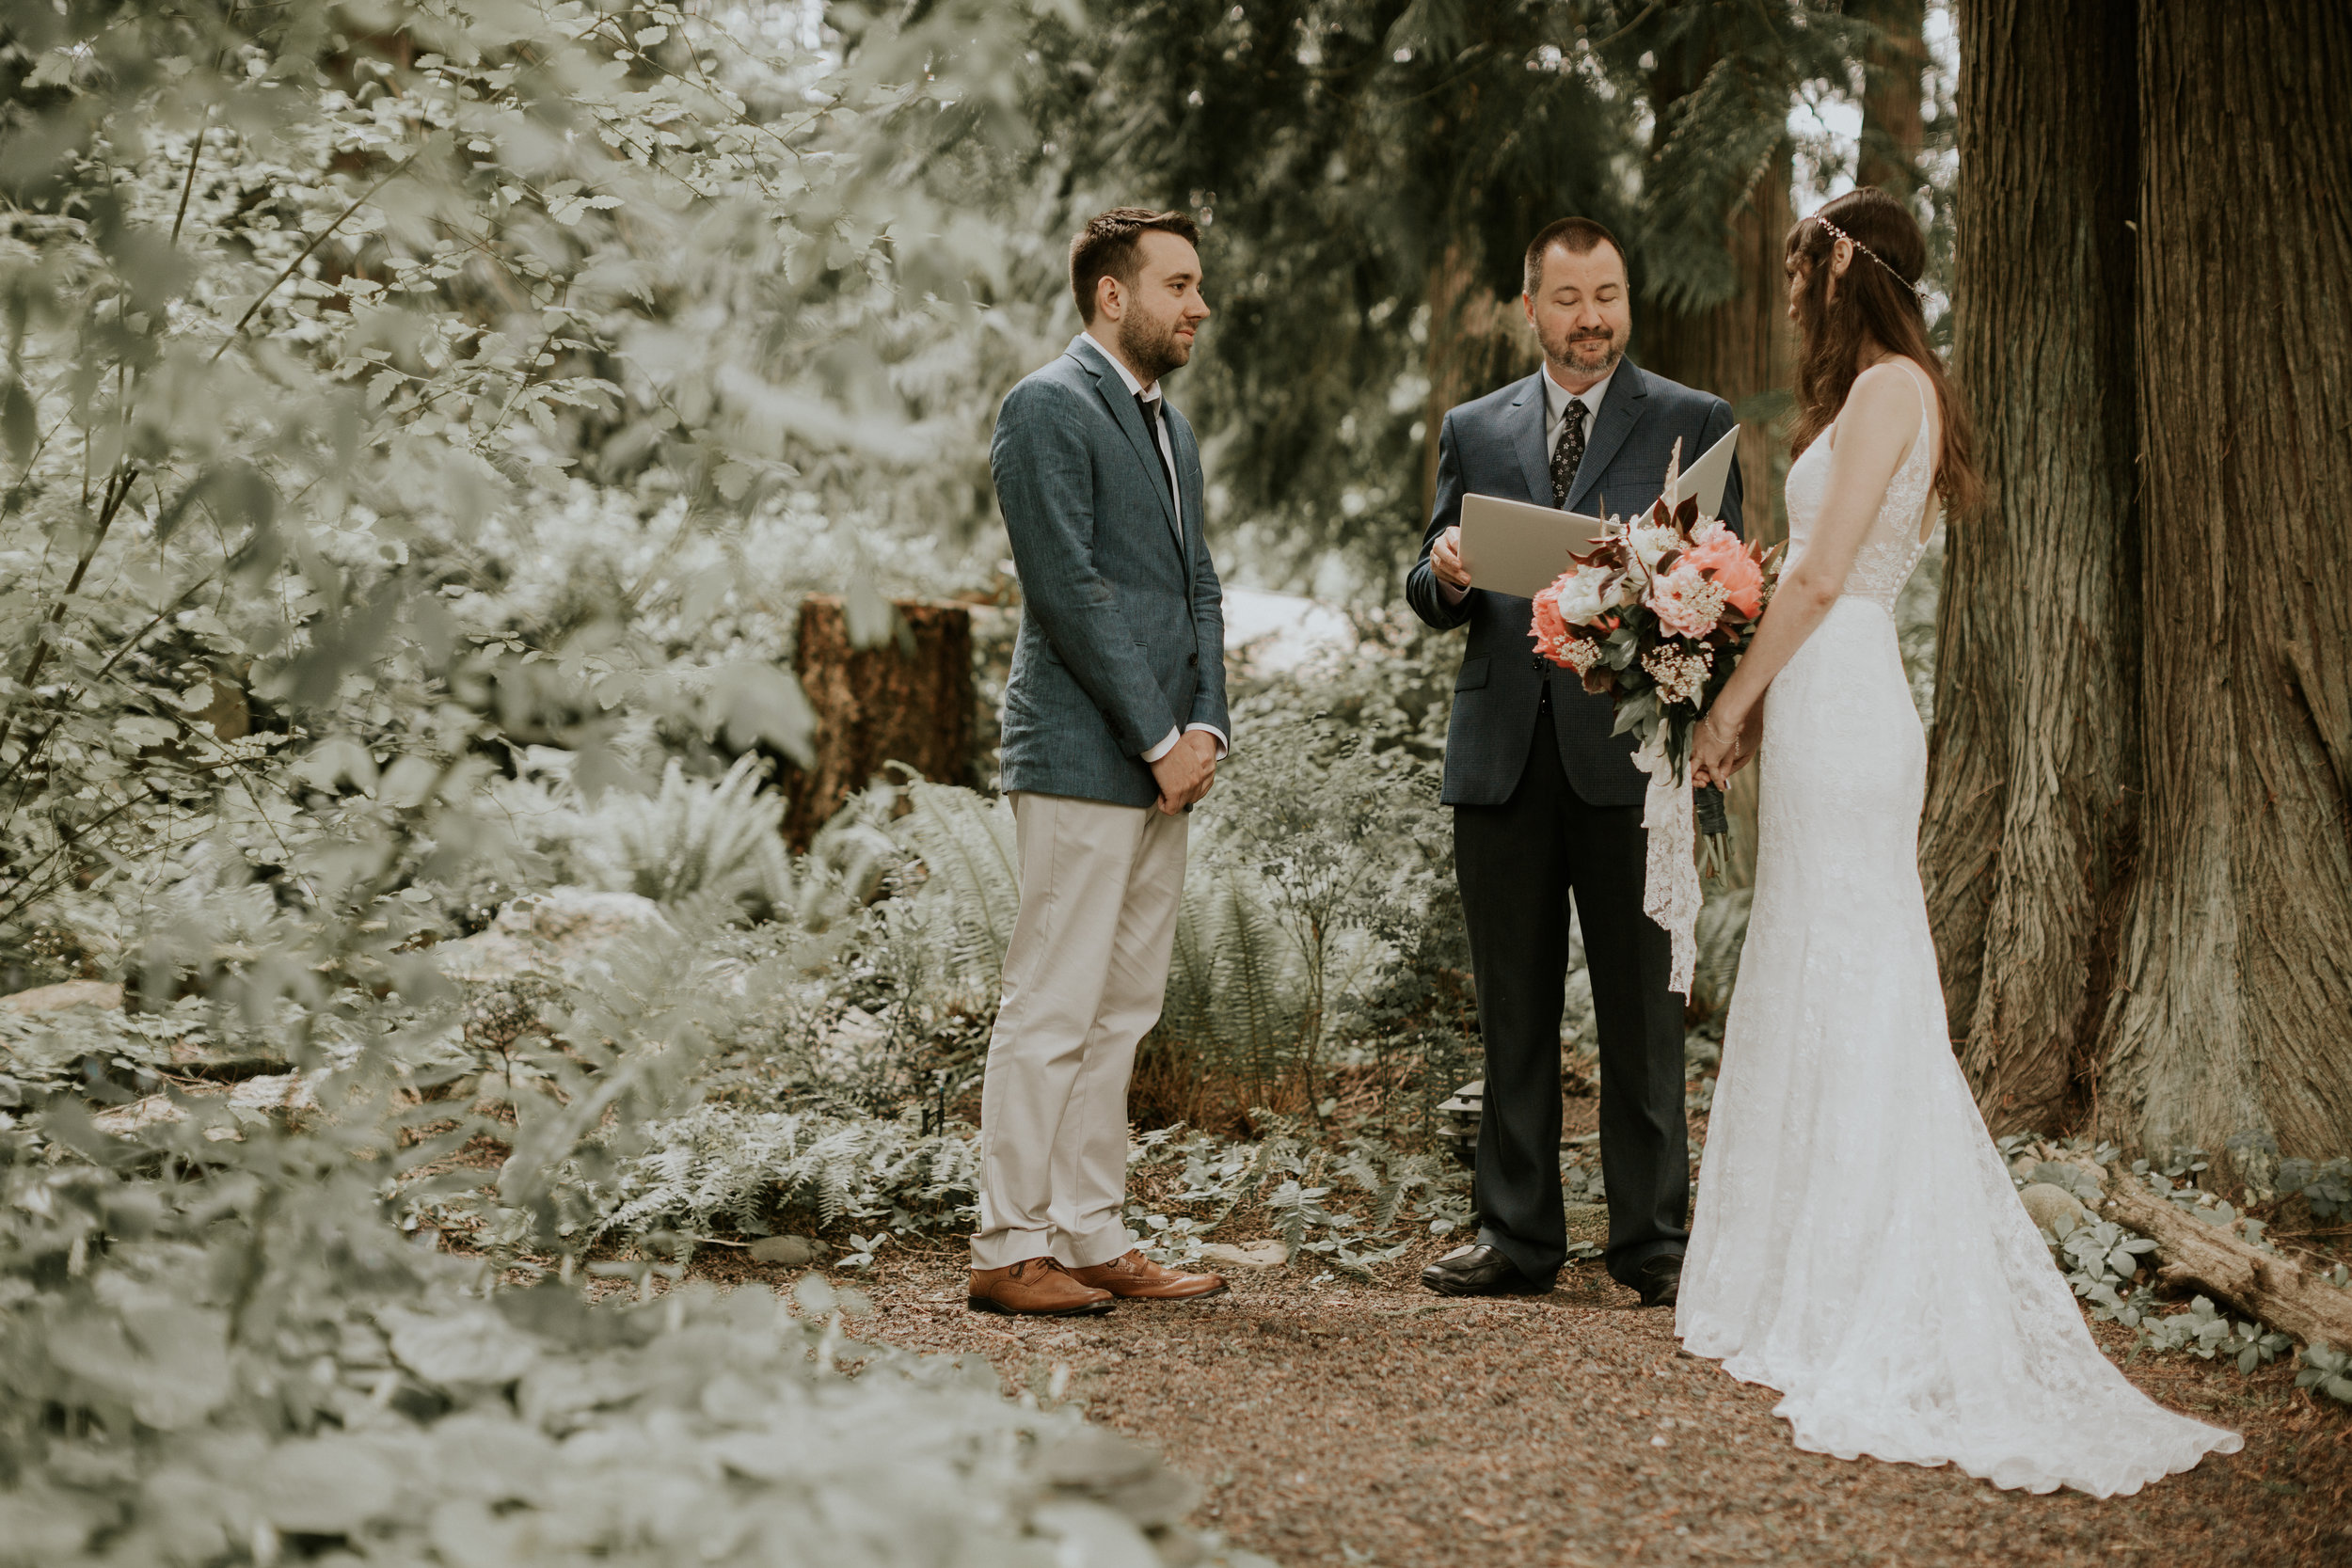 PNW-elopement-wedding-engagement-olympic national park-port angeles-hurricane ridge-lake crescent-kayla dawn photography- photographer-photography-kayladawnphoto-57.jpg